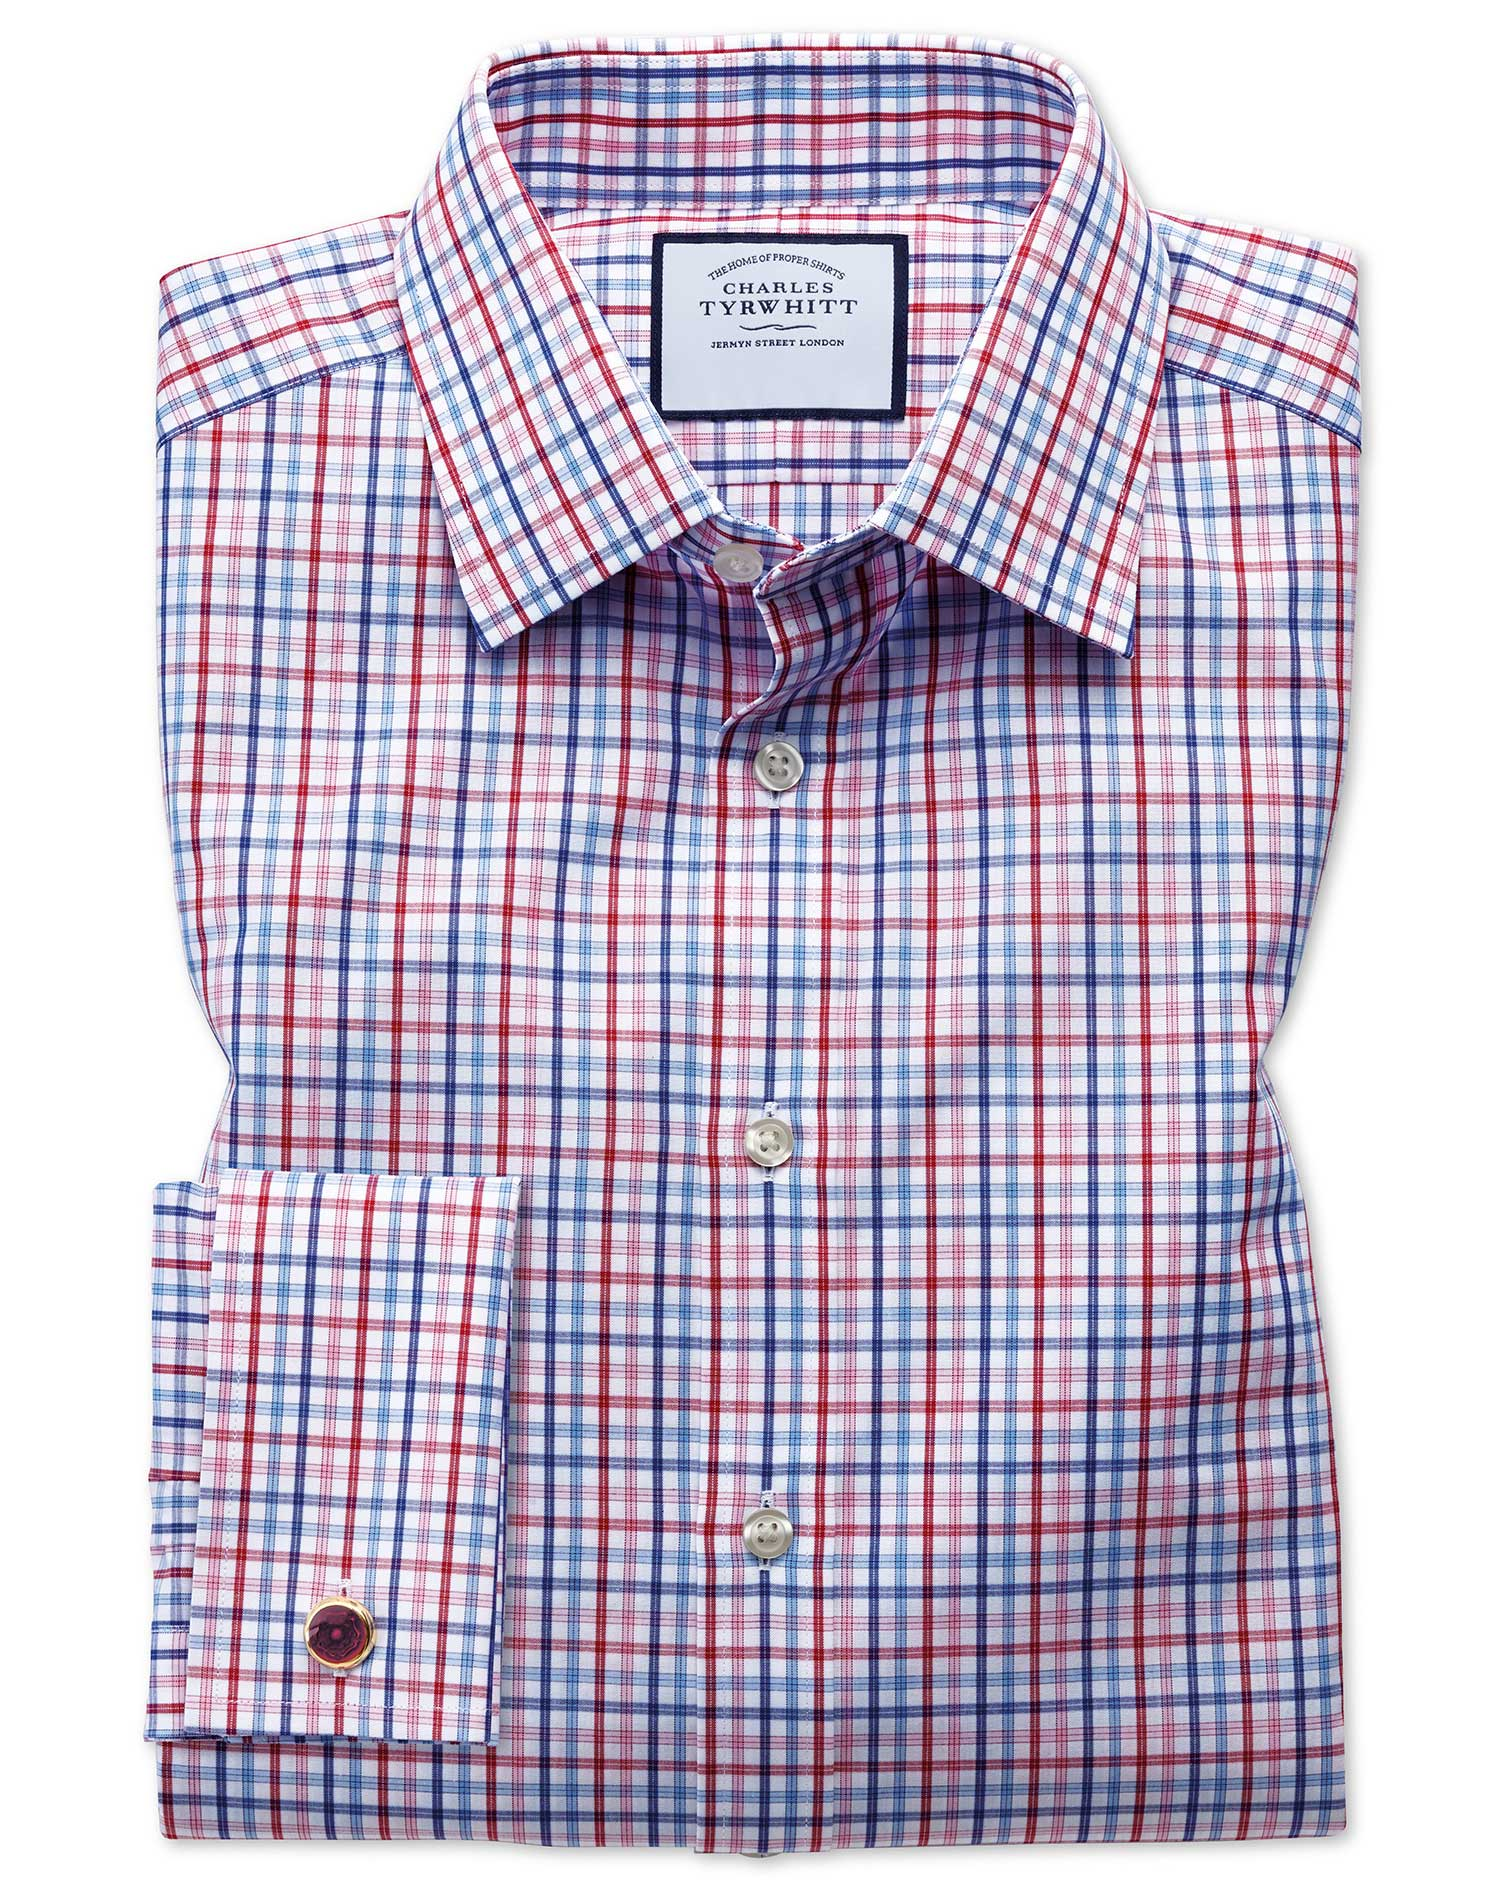 Slim Fit Poplin Multi Red Check Cotton Formal Shirt Double Cuff Size 15.5/32 by Charles Tyrwhitt